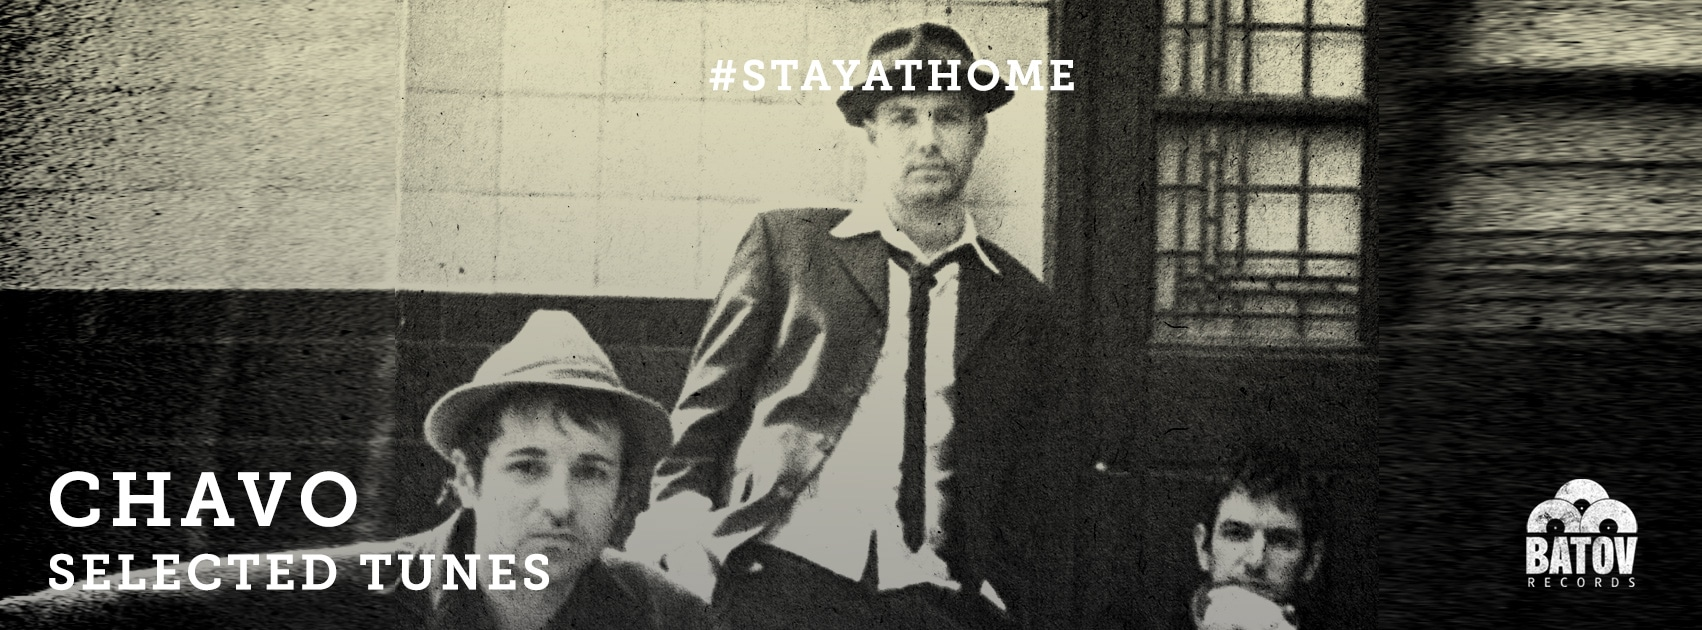 A handpicked selection of stay at home songs from Chavo